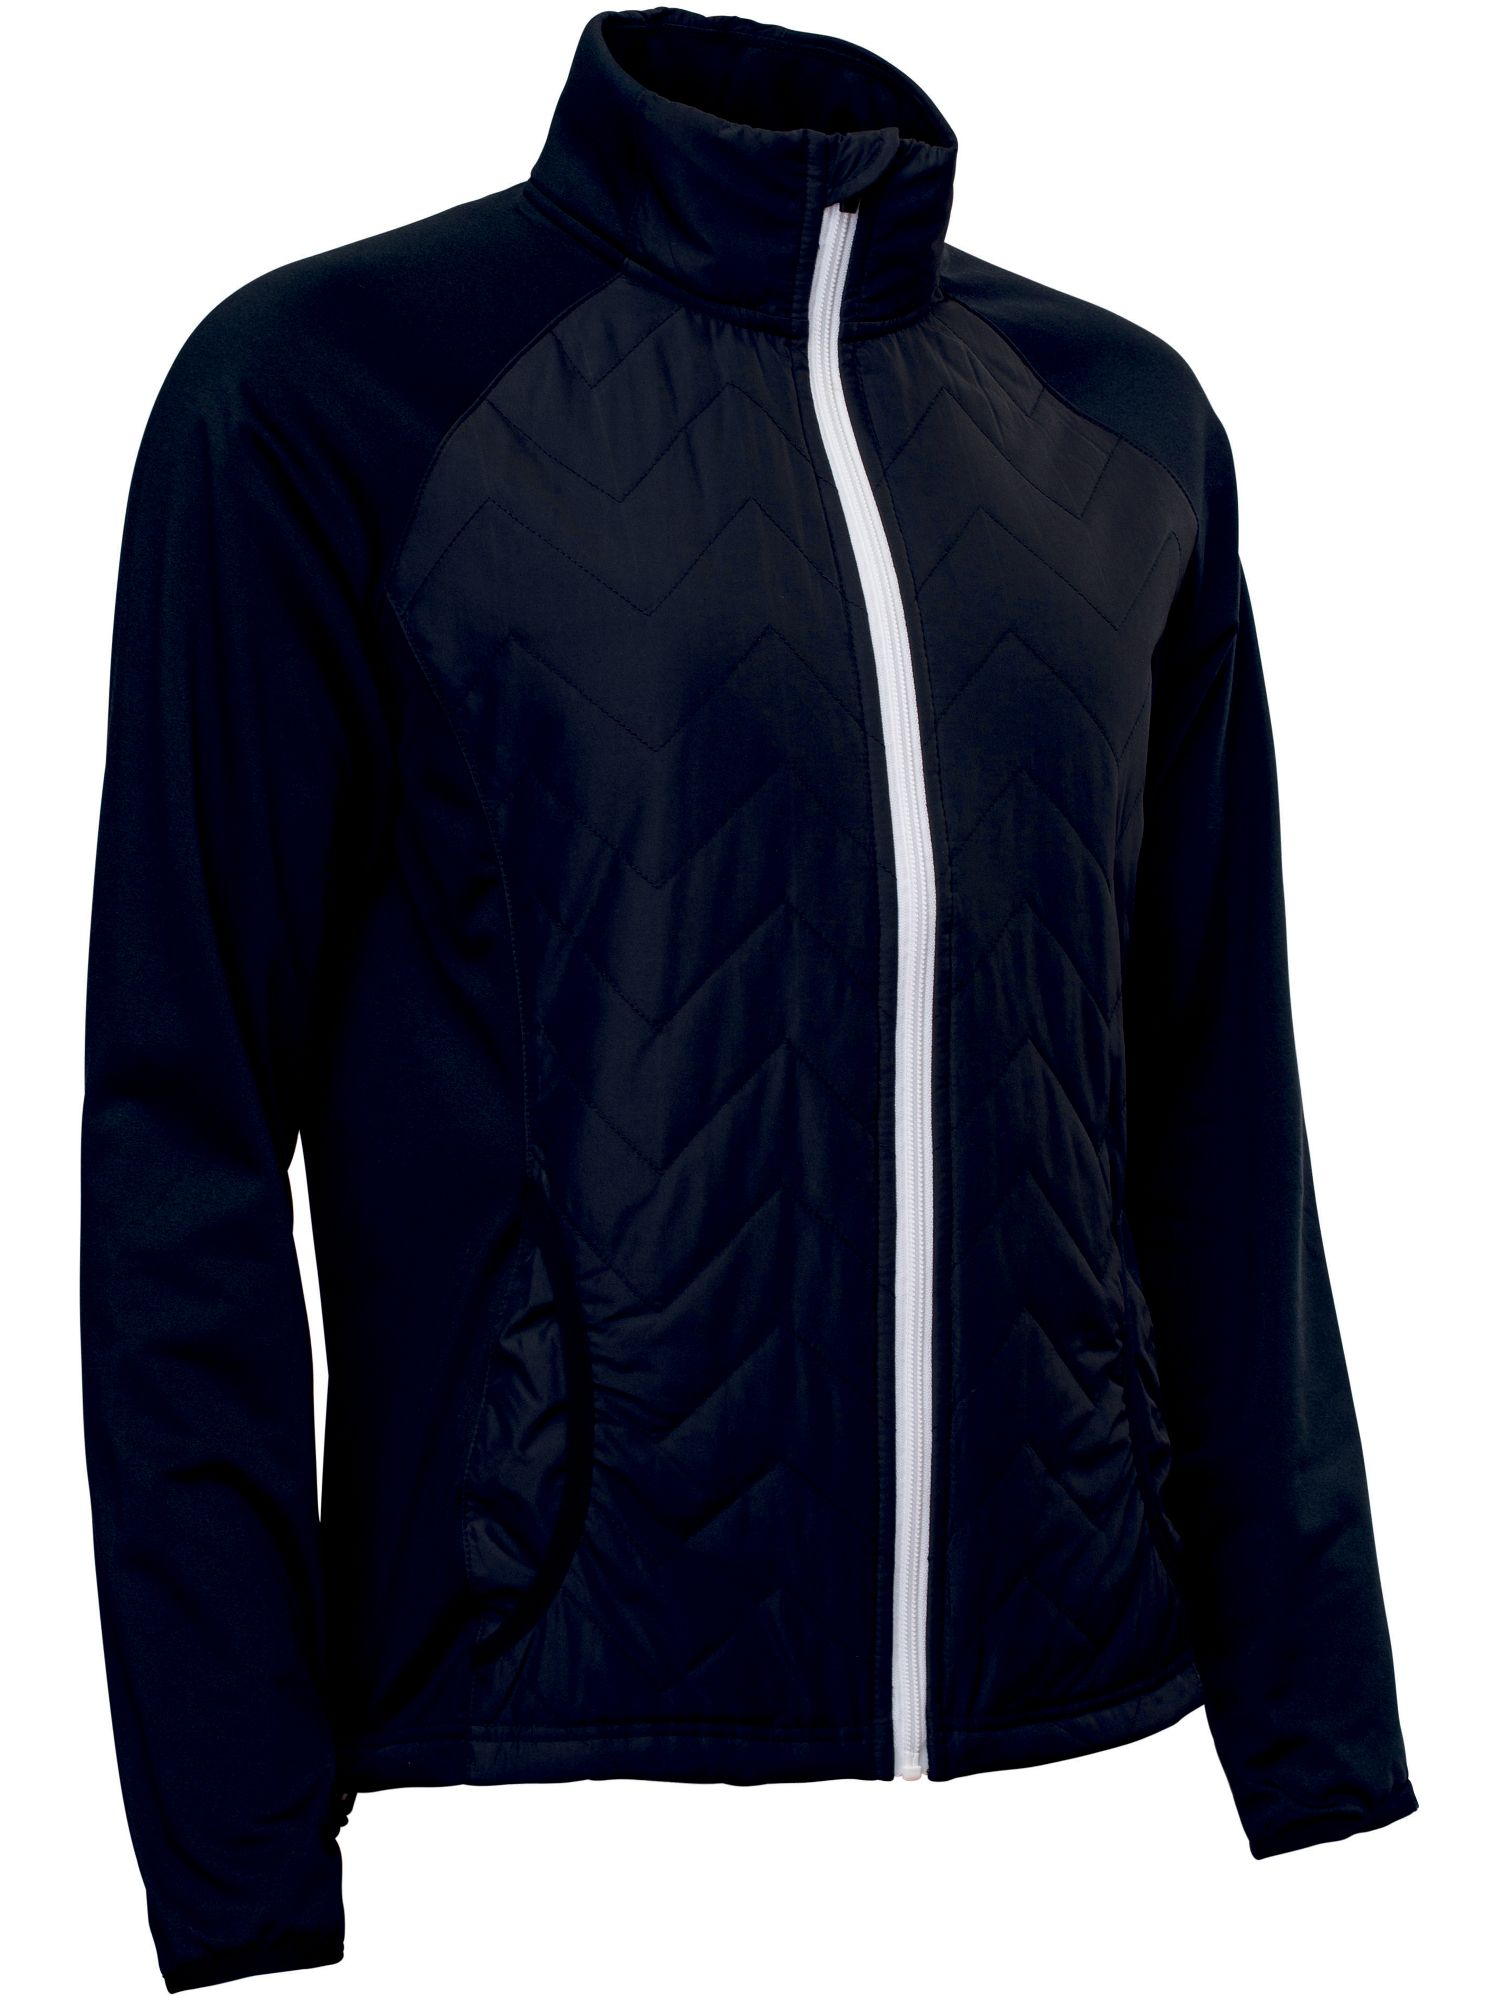 Abacus Hybrid Jacket, Black